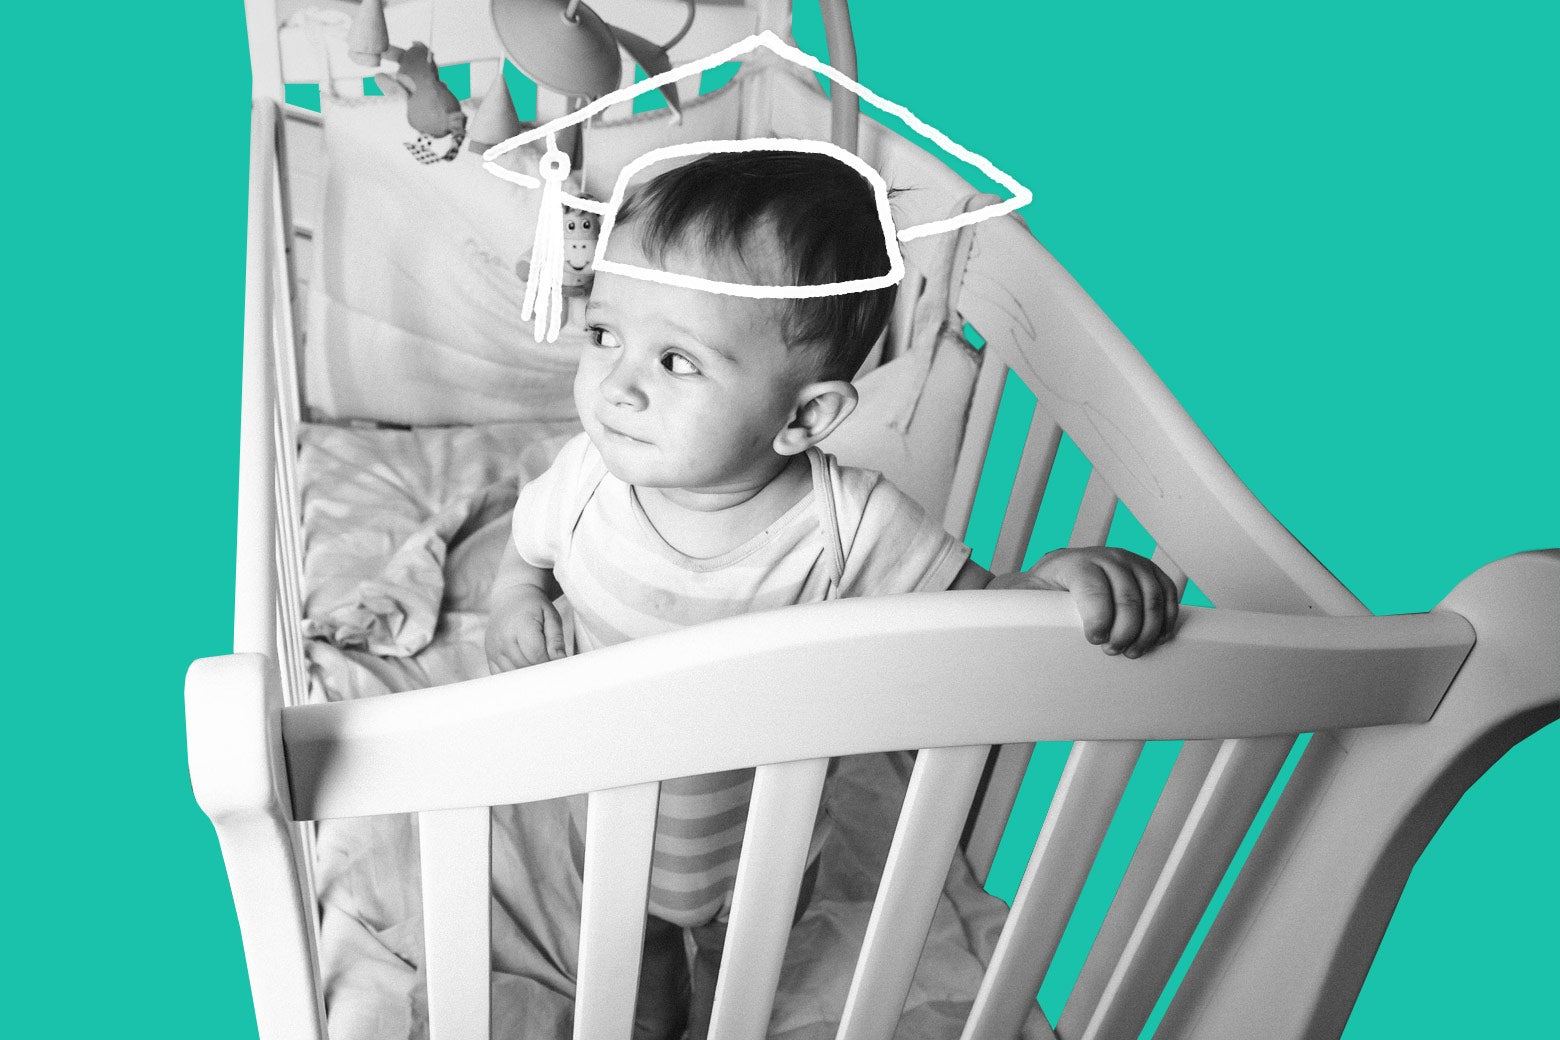 A baby in his crib, with a graduation-cap outline